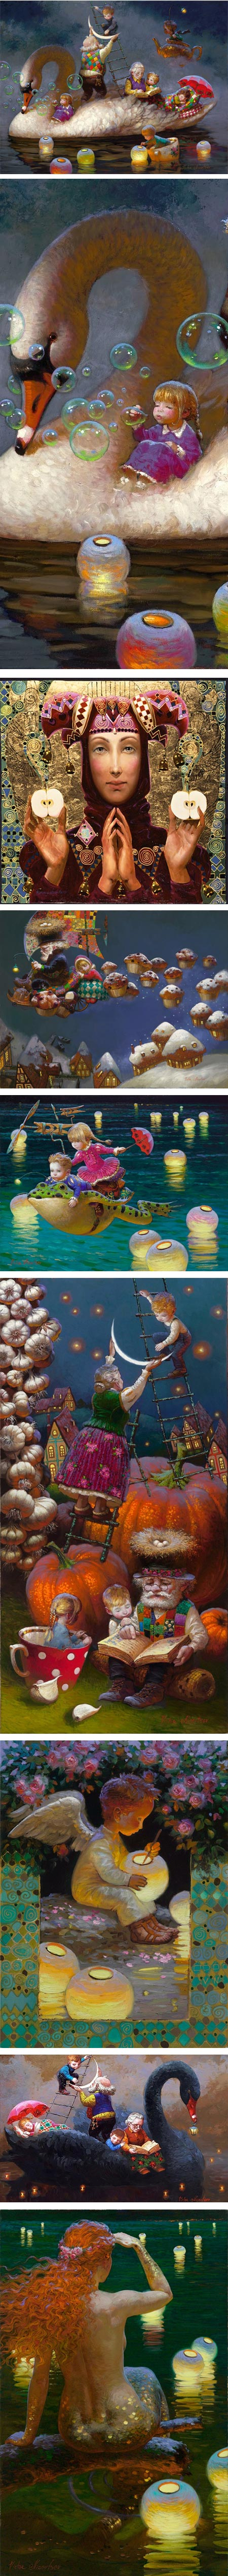 Victor Nizovtsev